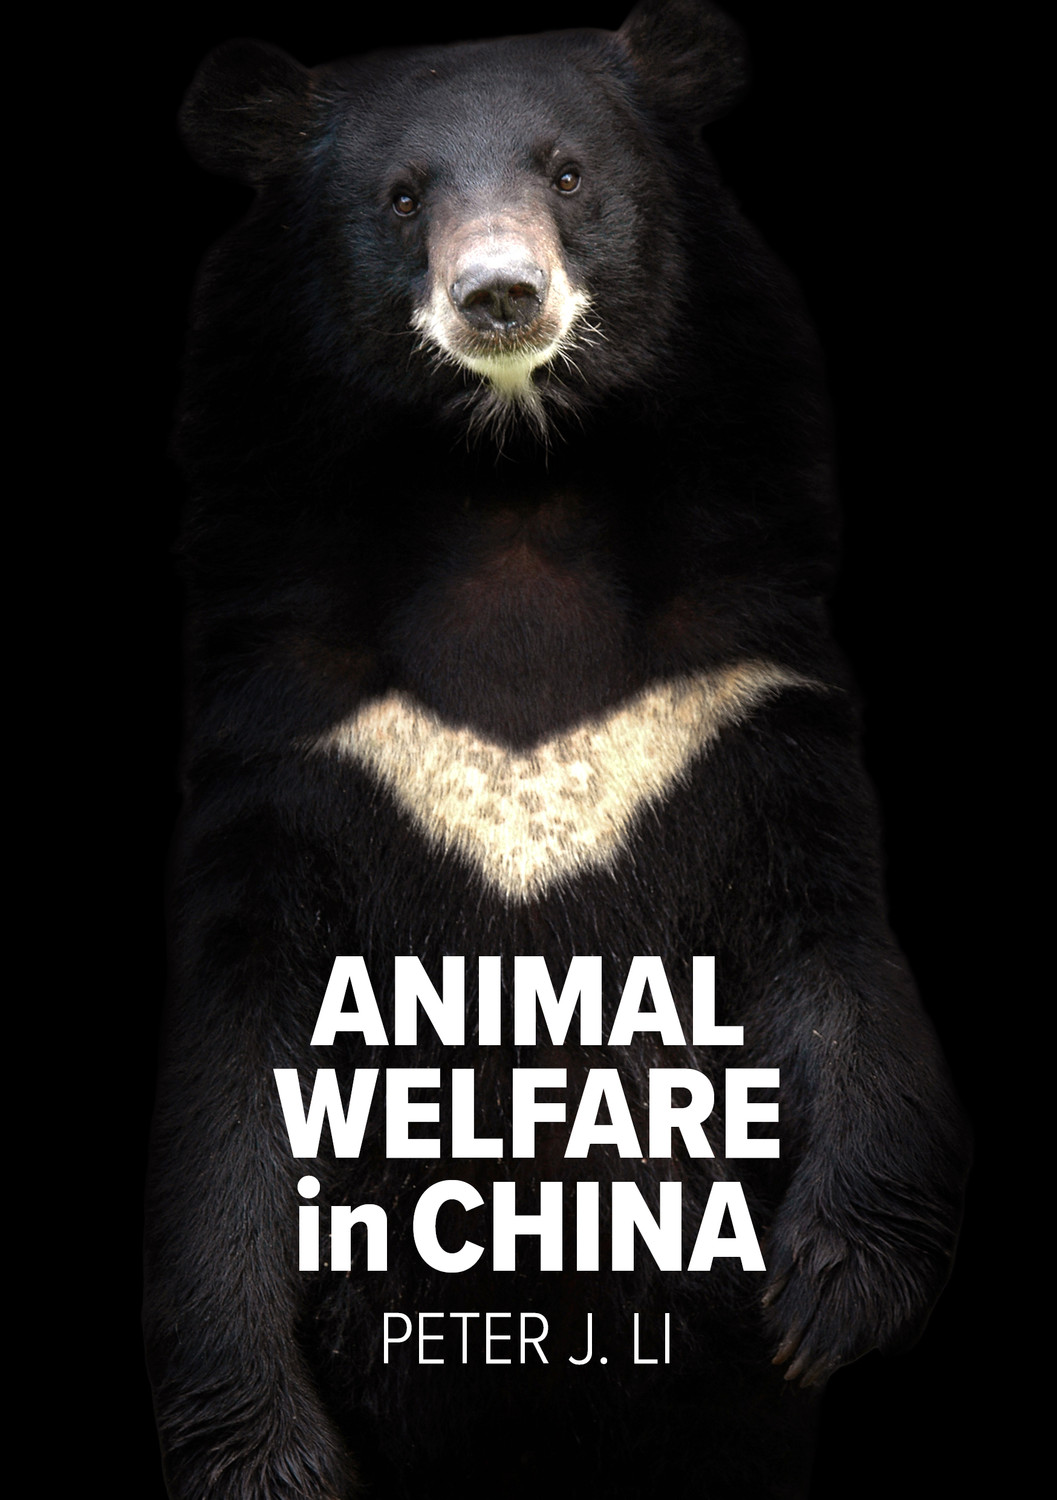 A moon bear staring out at you on a black background, text - Animal Welfare in China by Peter J. Li